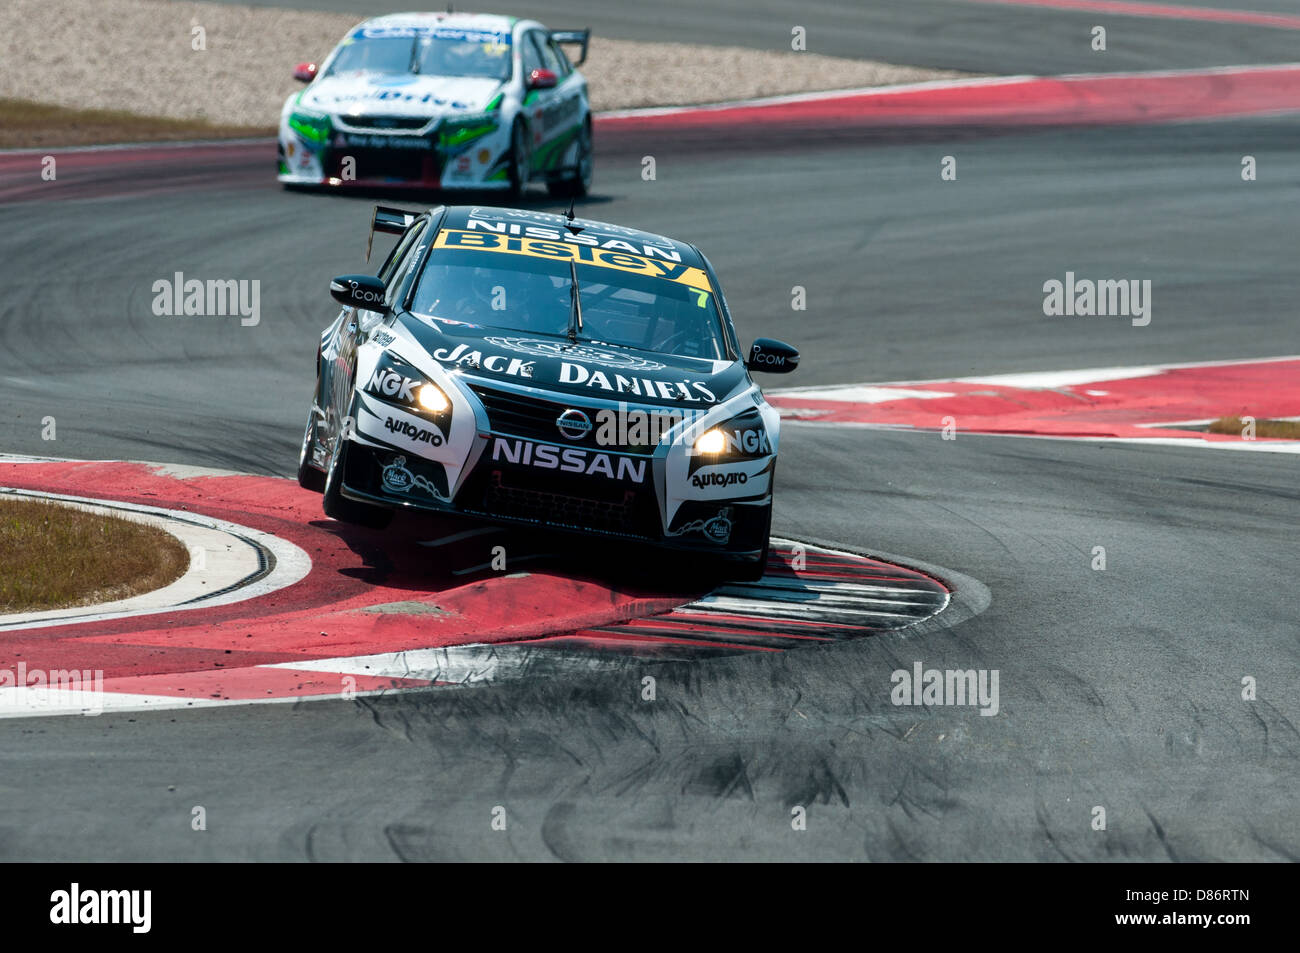 Todd Kelly of V8 Supercars team Motorsport Holdings hits the curb during V8 Supercars racing at Circuit of the Americas, - Stock Image